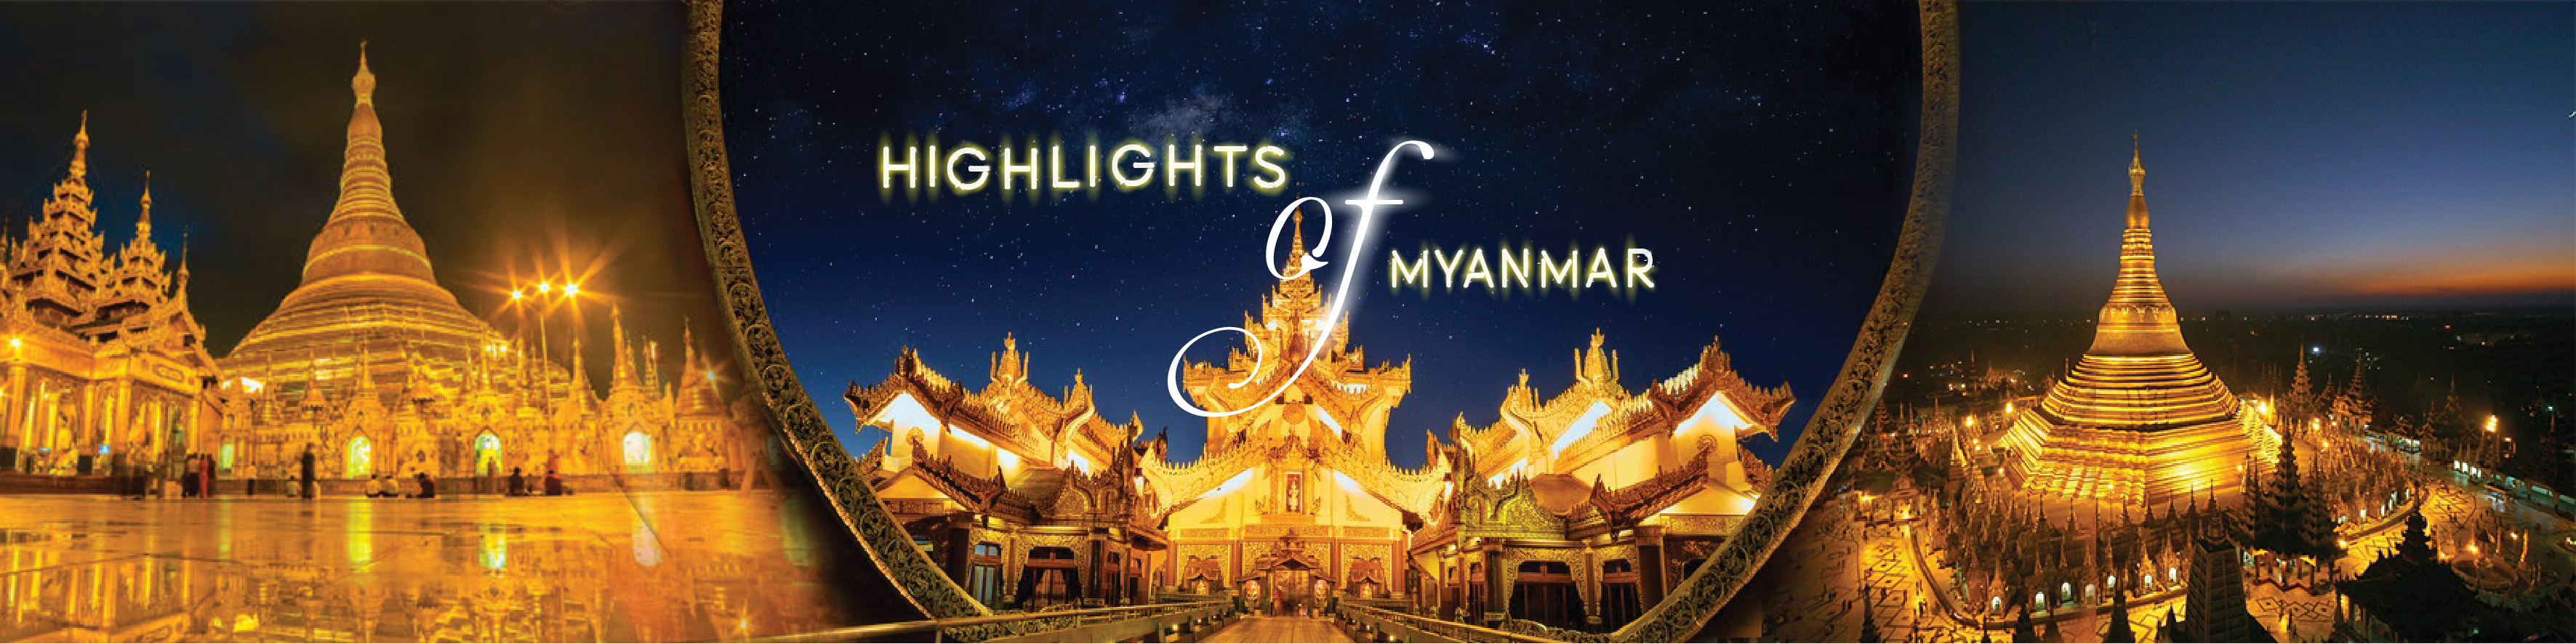 http://indochinatravelland.com/yangon-bagan-inle-mandalay-6days/5nights